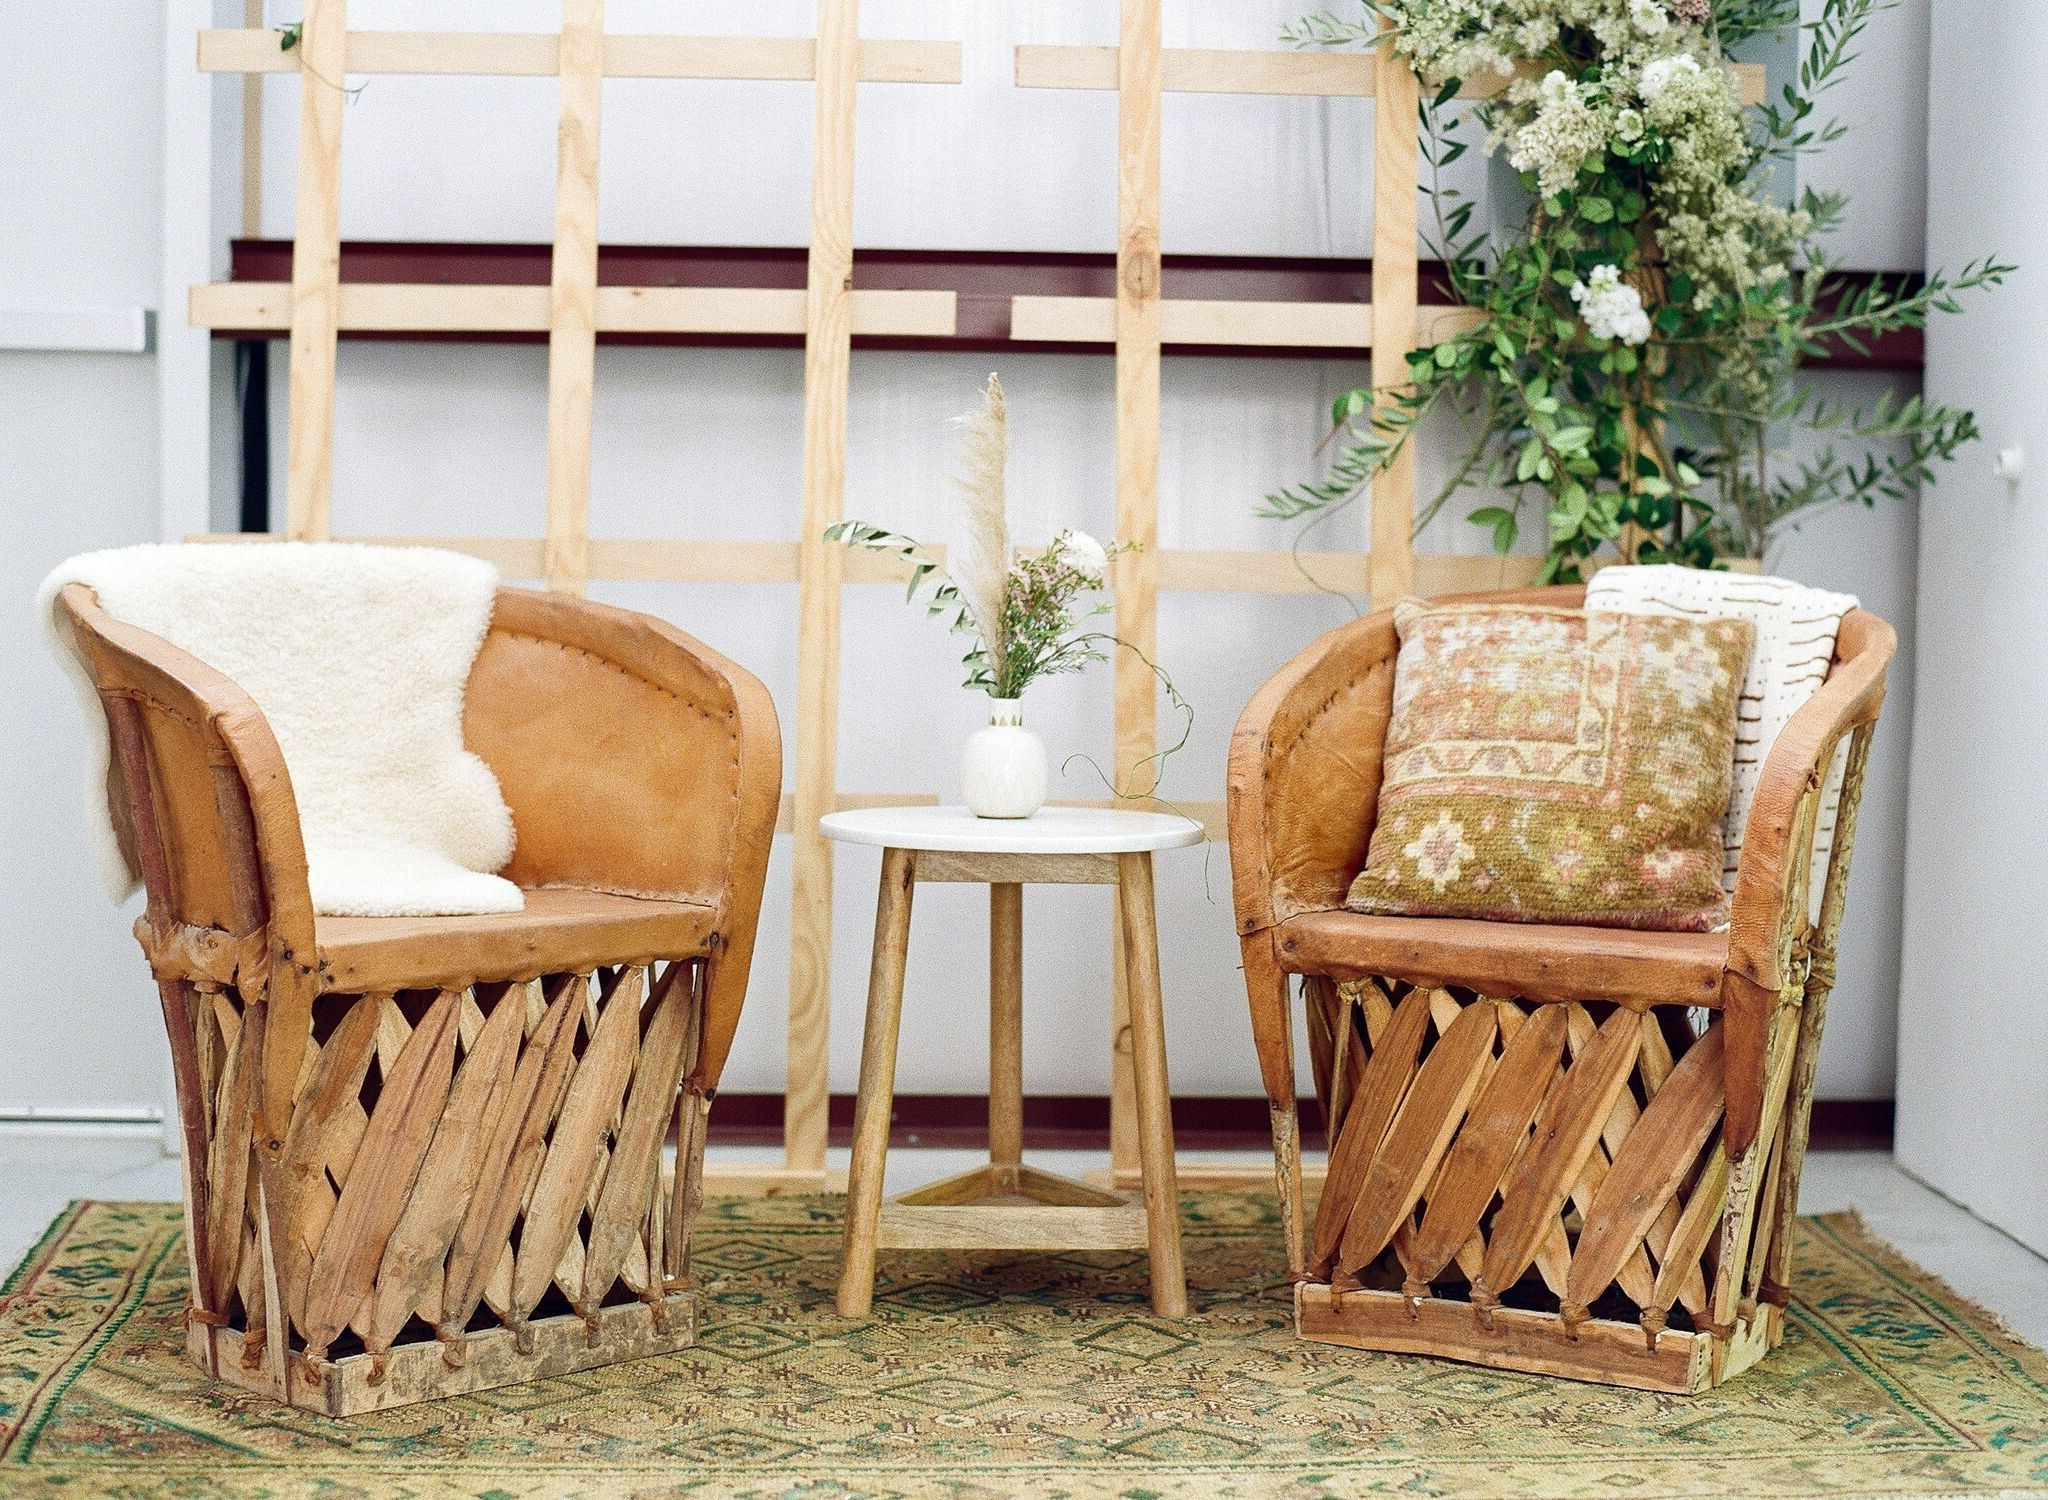 Event Lounge With Two Mexican Equipale Chairs And Sheepskin 20+ Birch Event Design Bathroom Ideas